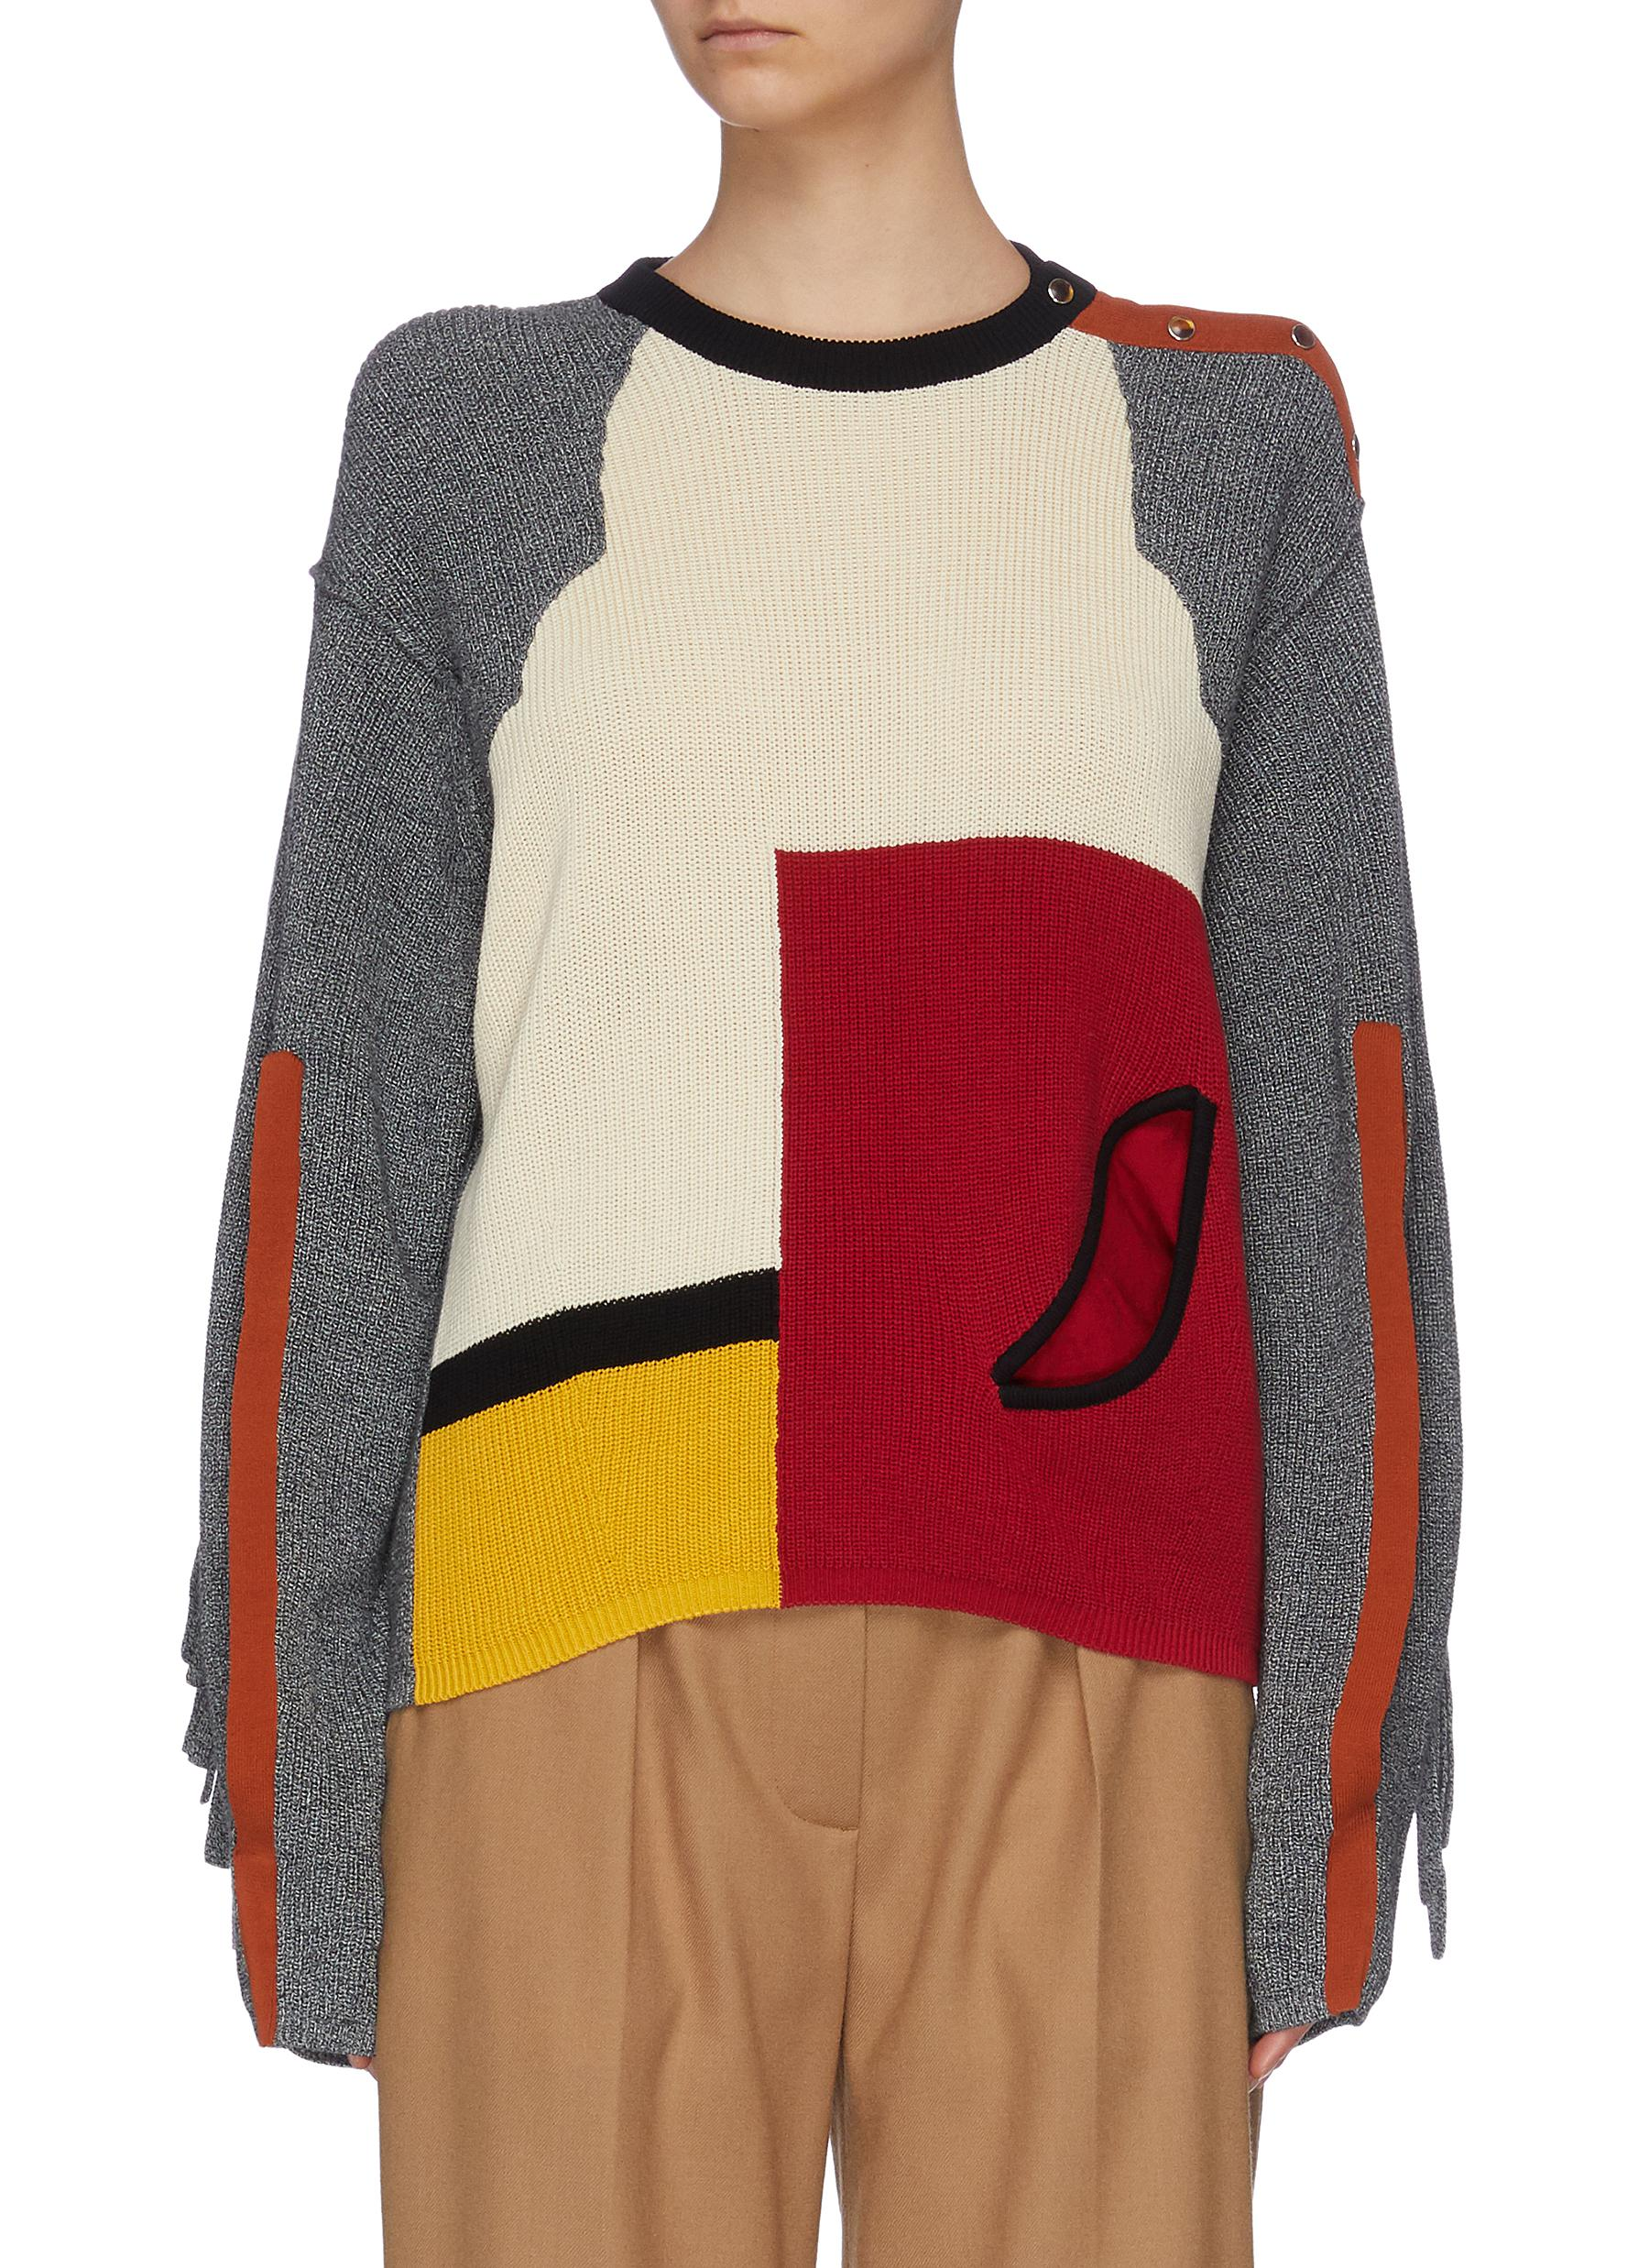 Buy Toga Archives Knitwear Colourblock panelled slit sleeve sweater